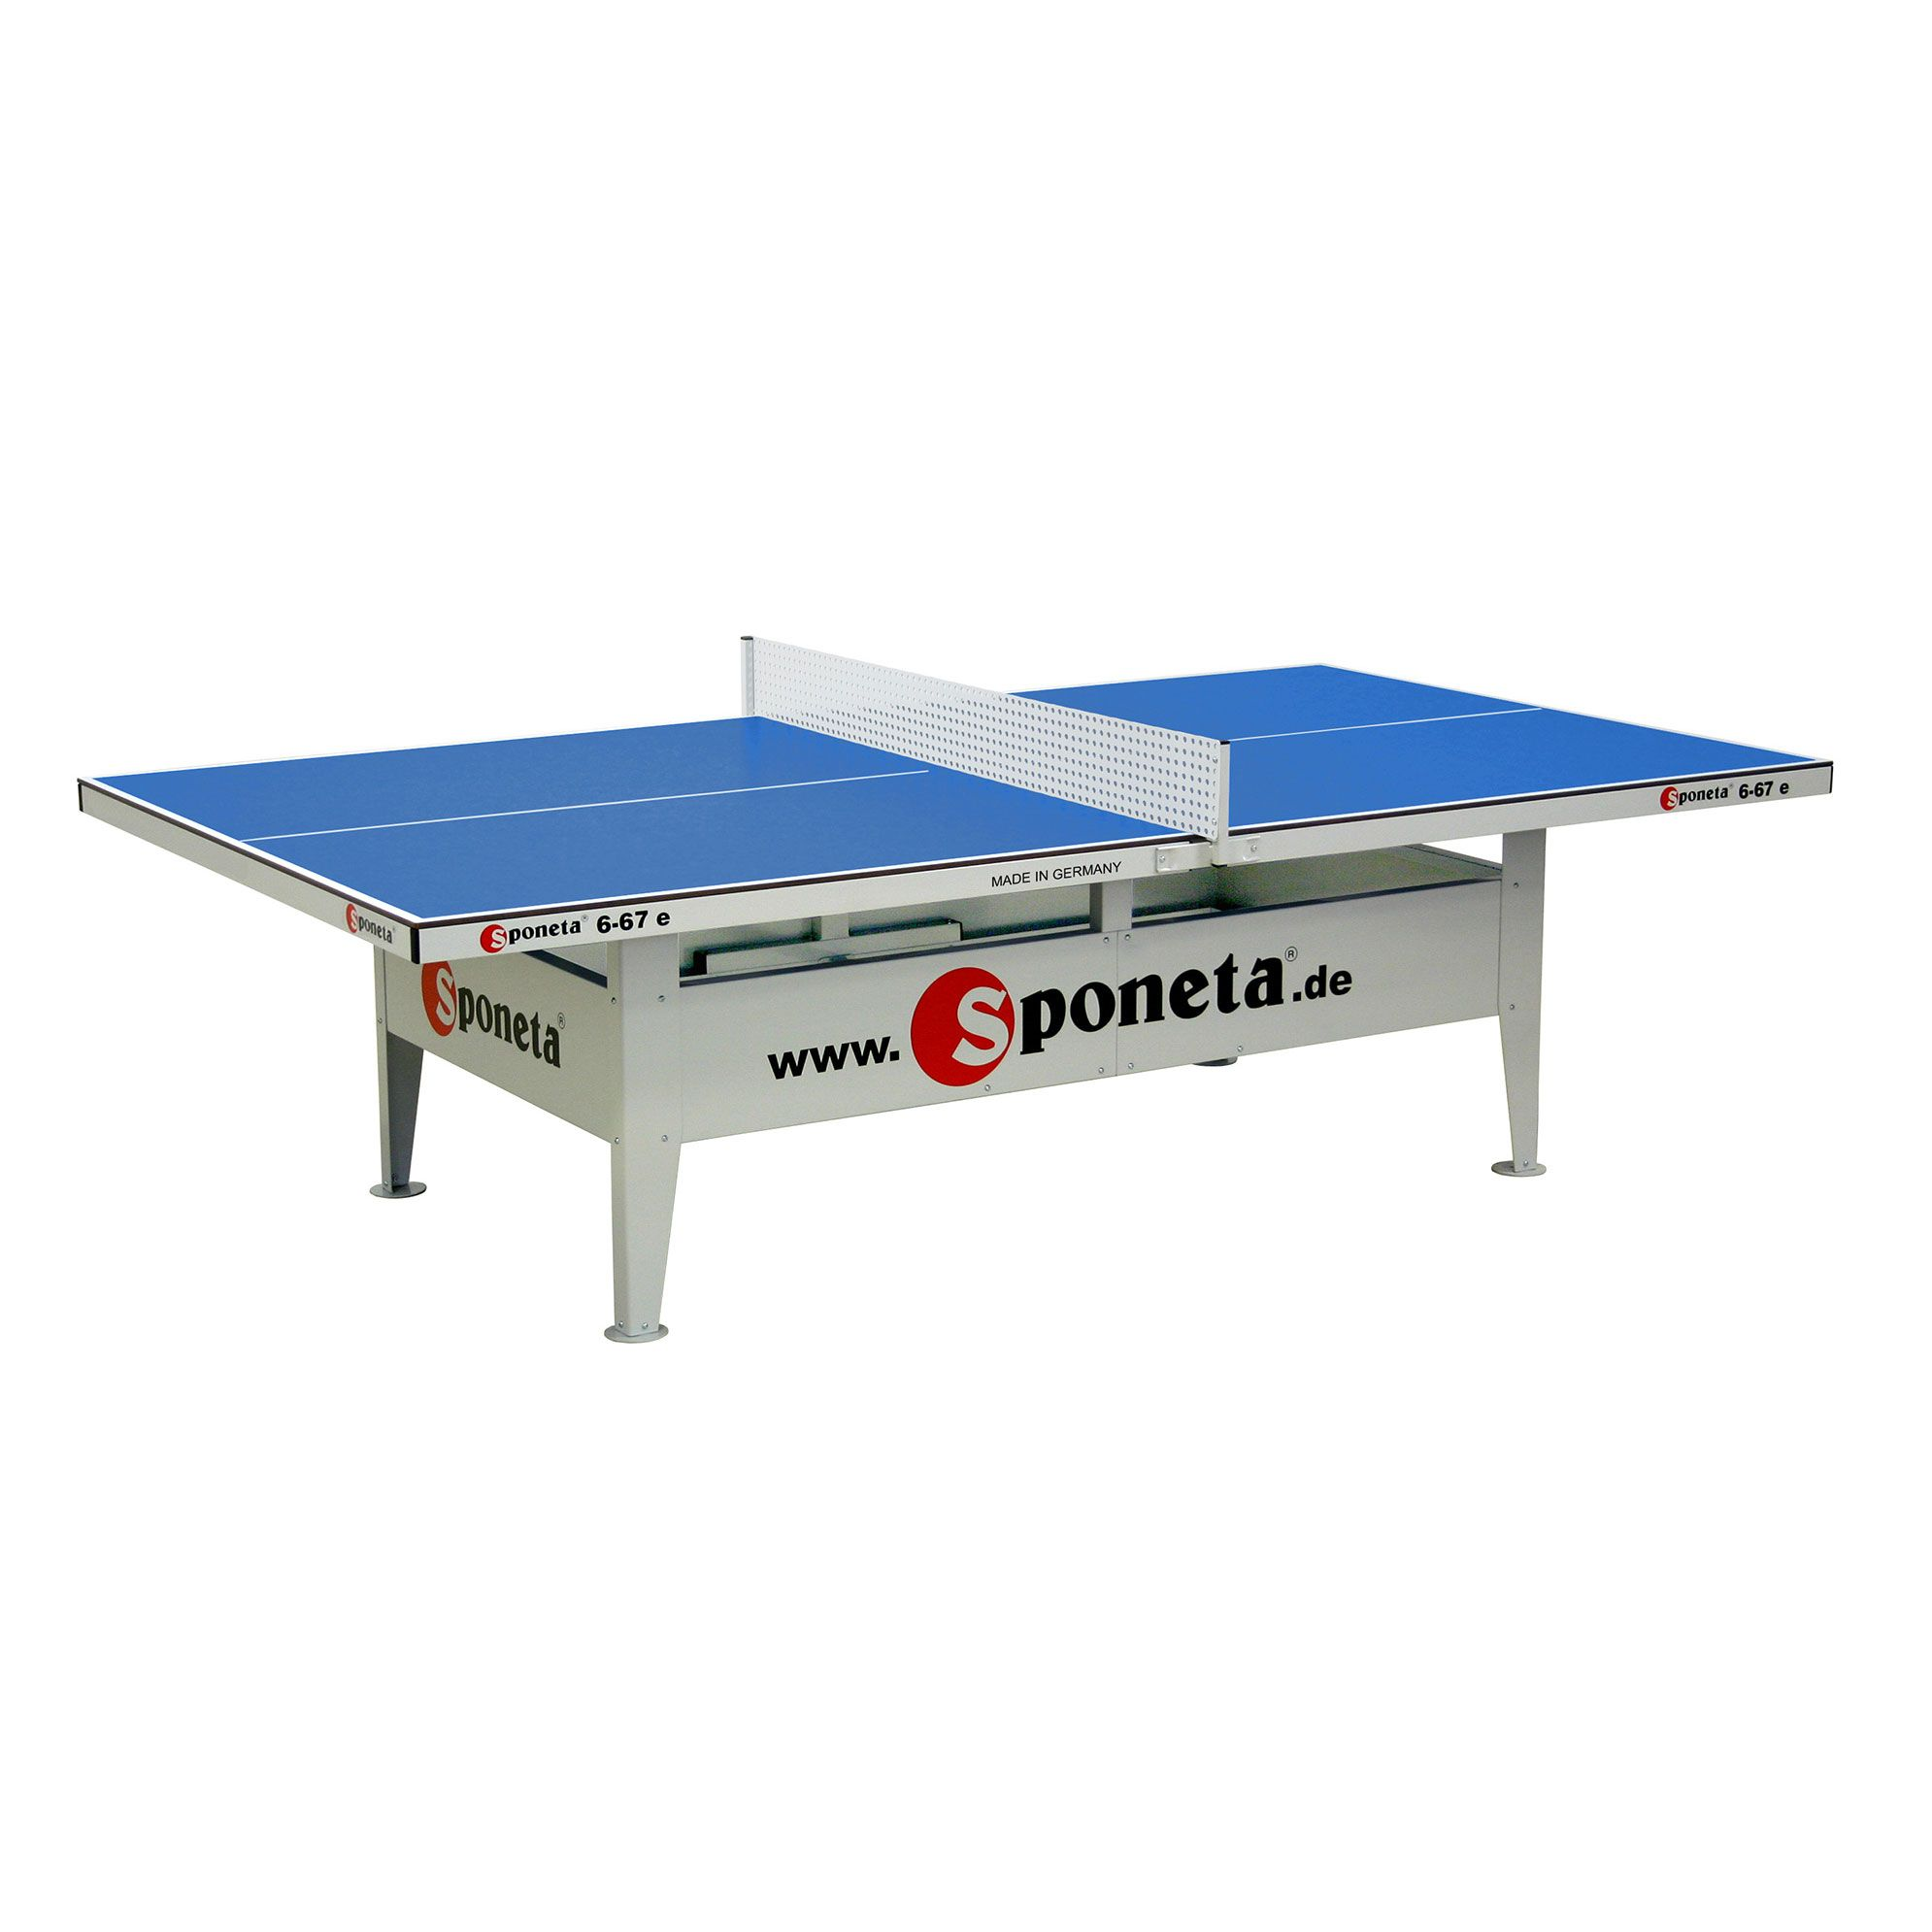 Sponeta activeline outdoor table tennis table - Weatherproof table tennis table ...